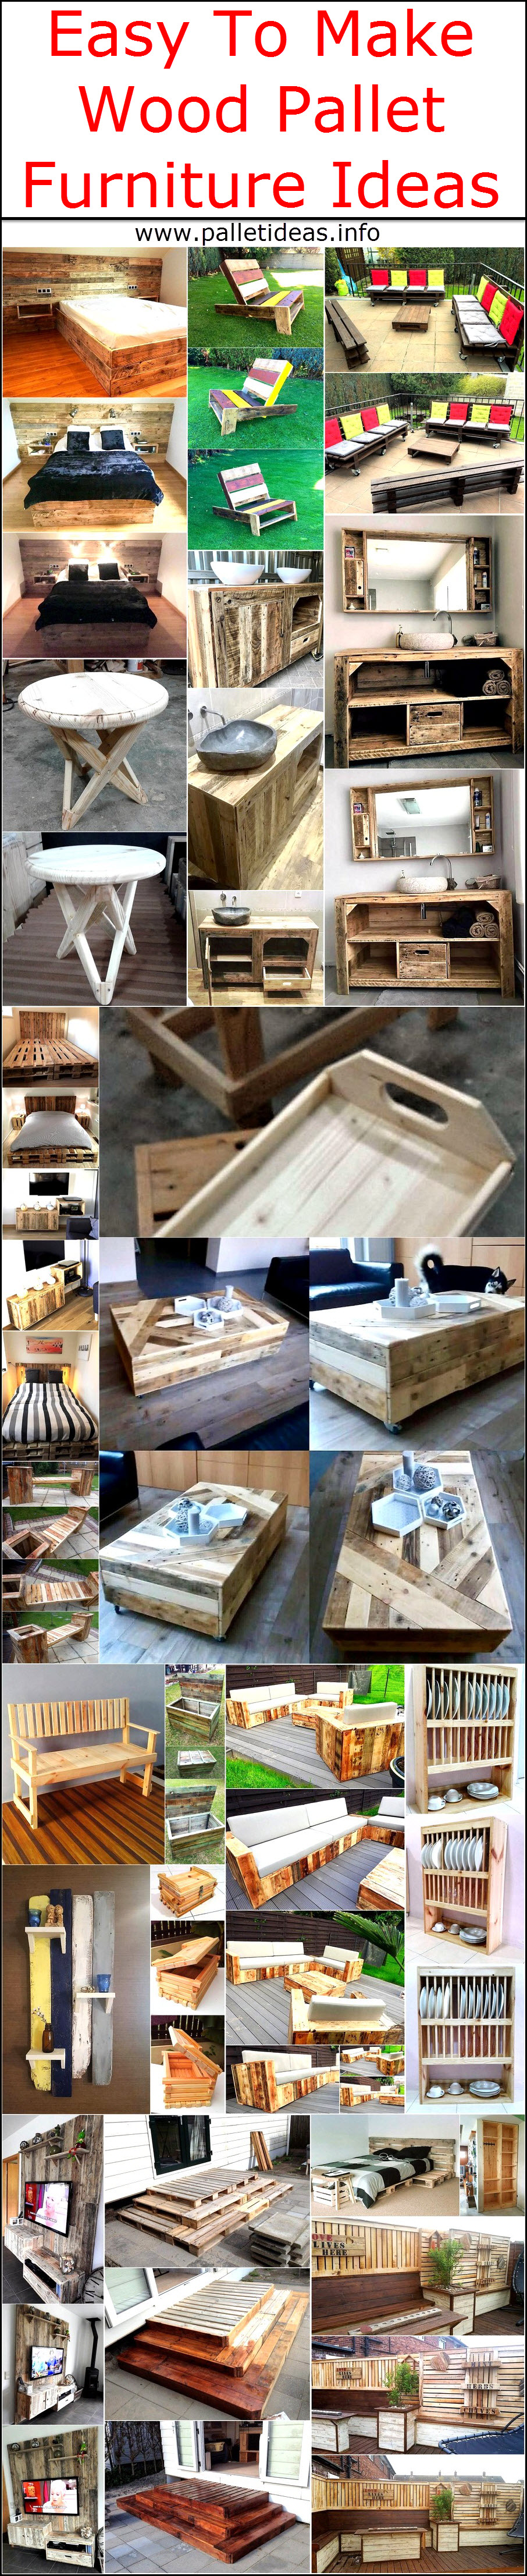 easy to make furniture ideas.  Easy To Make Wood Pallet Furniture Ideas